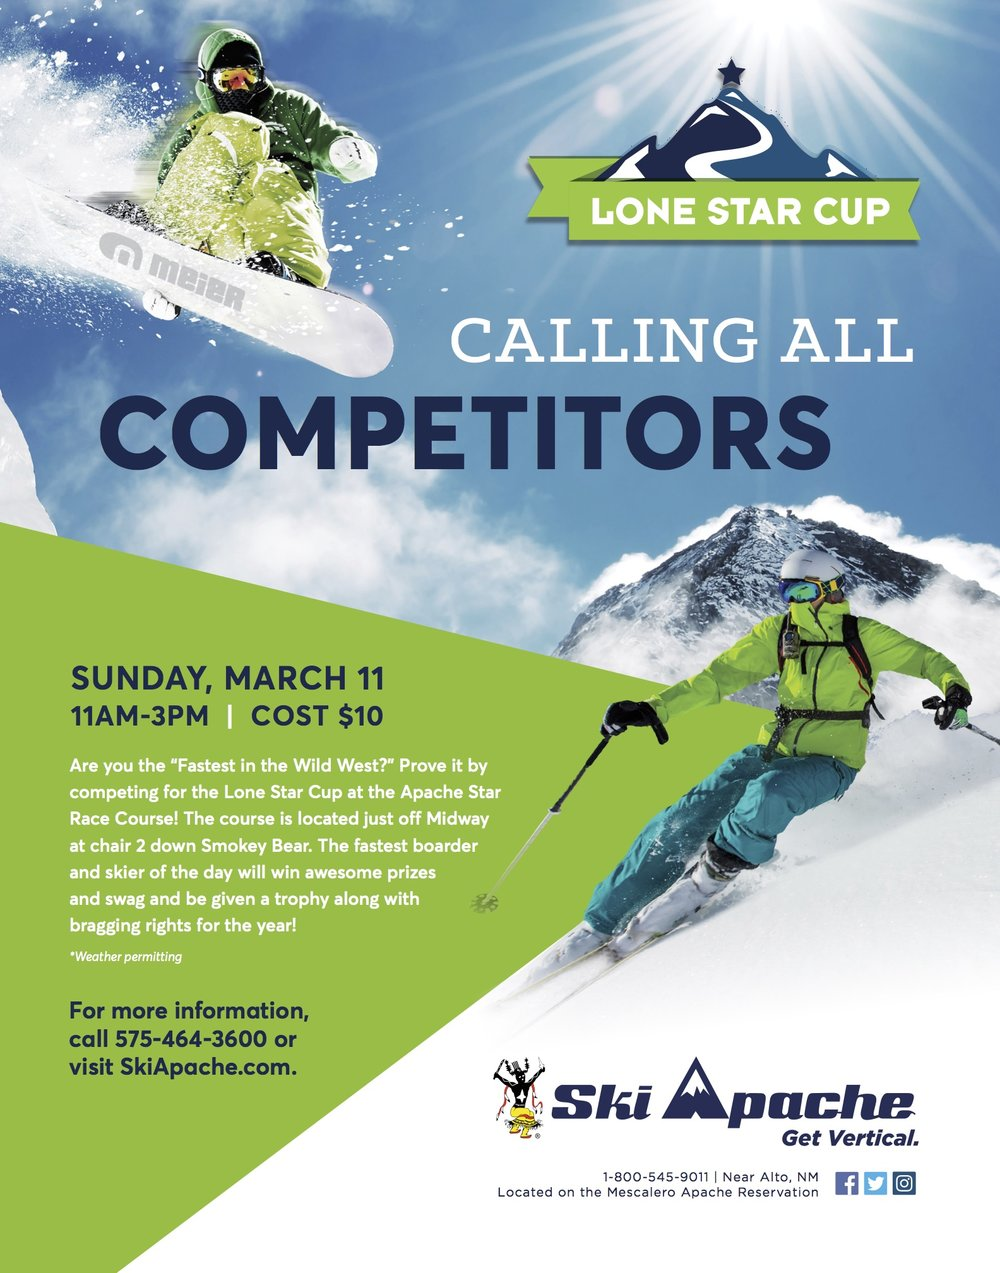 Lone Star Cup Competition at Ski Apache